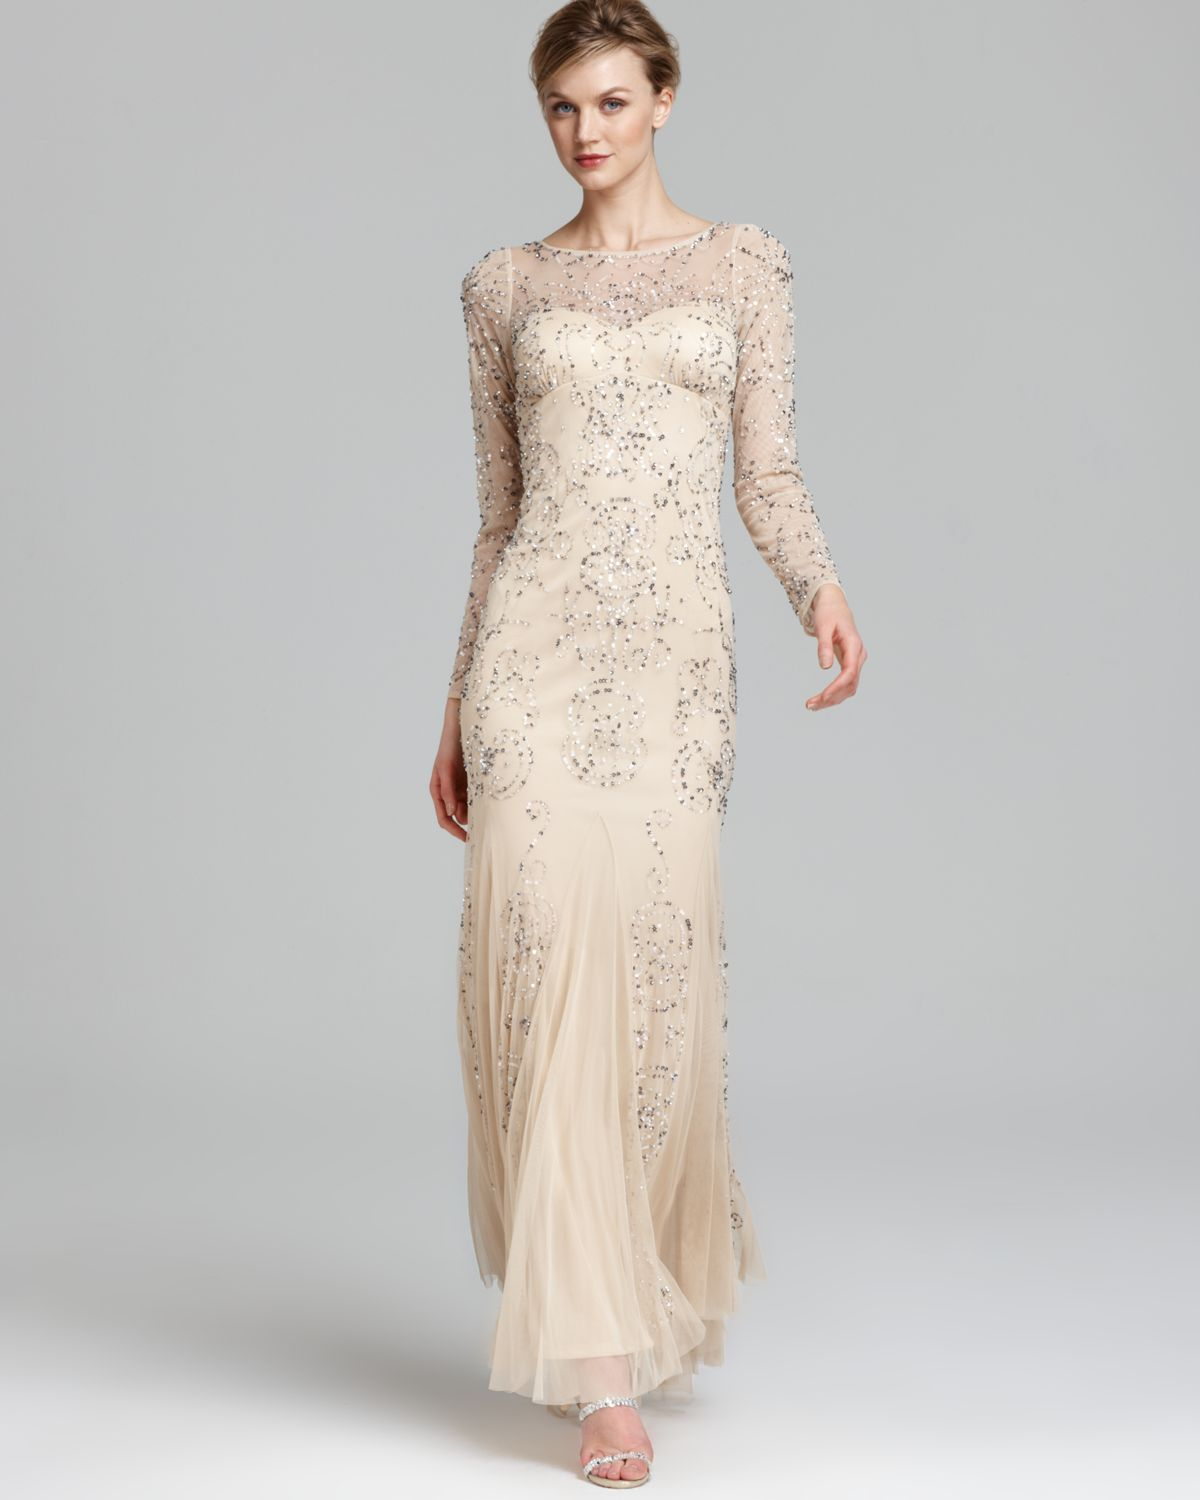 Lyst - Adrianna Papell Beaded Gown Long Sleeve in Natural